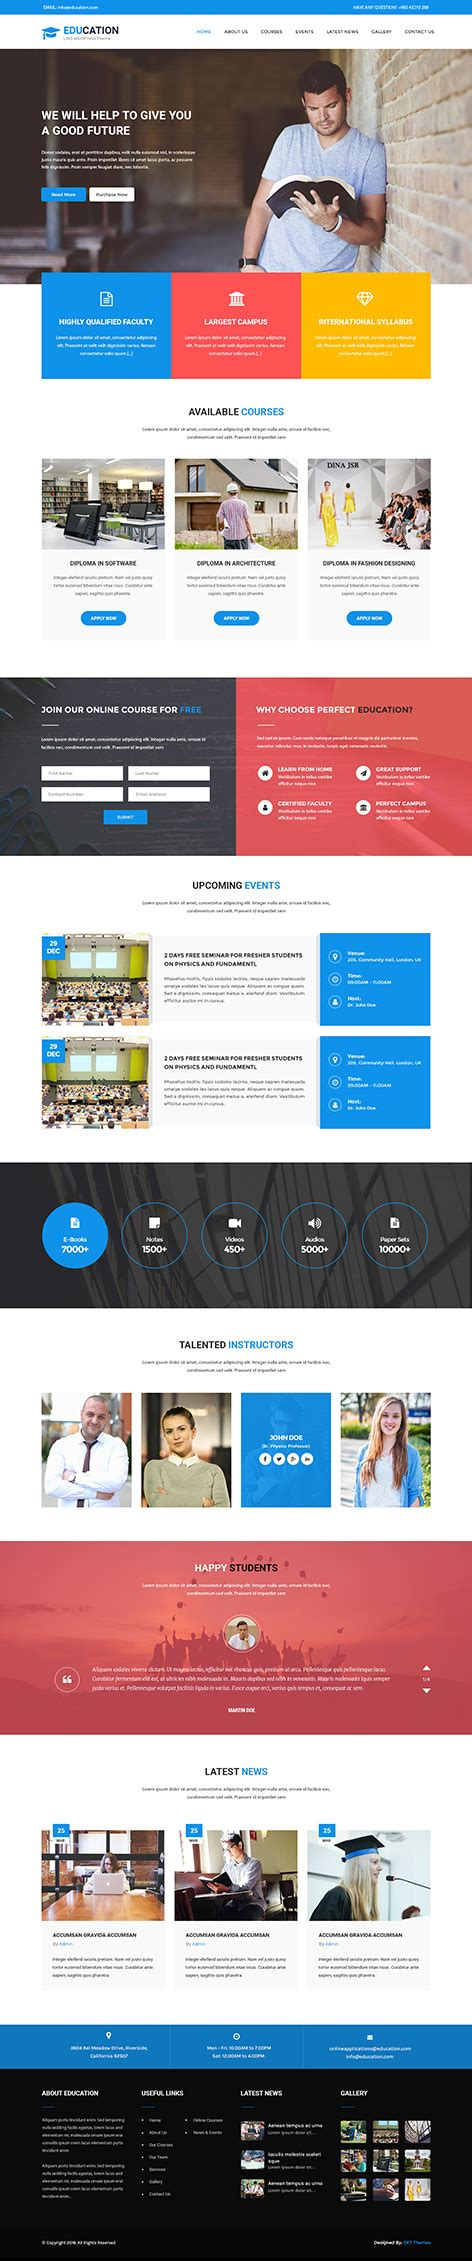 theme wordpress free lms lms wordpress theme for learning education schools